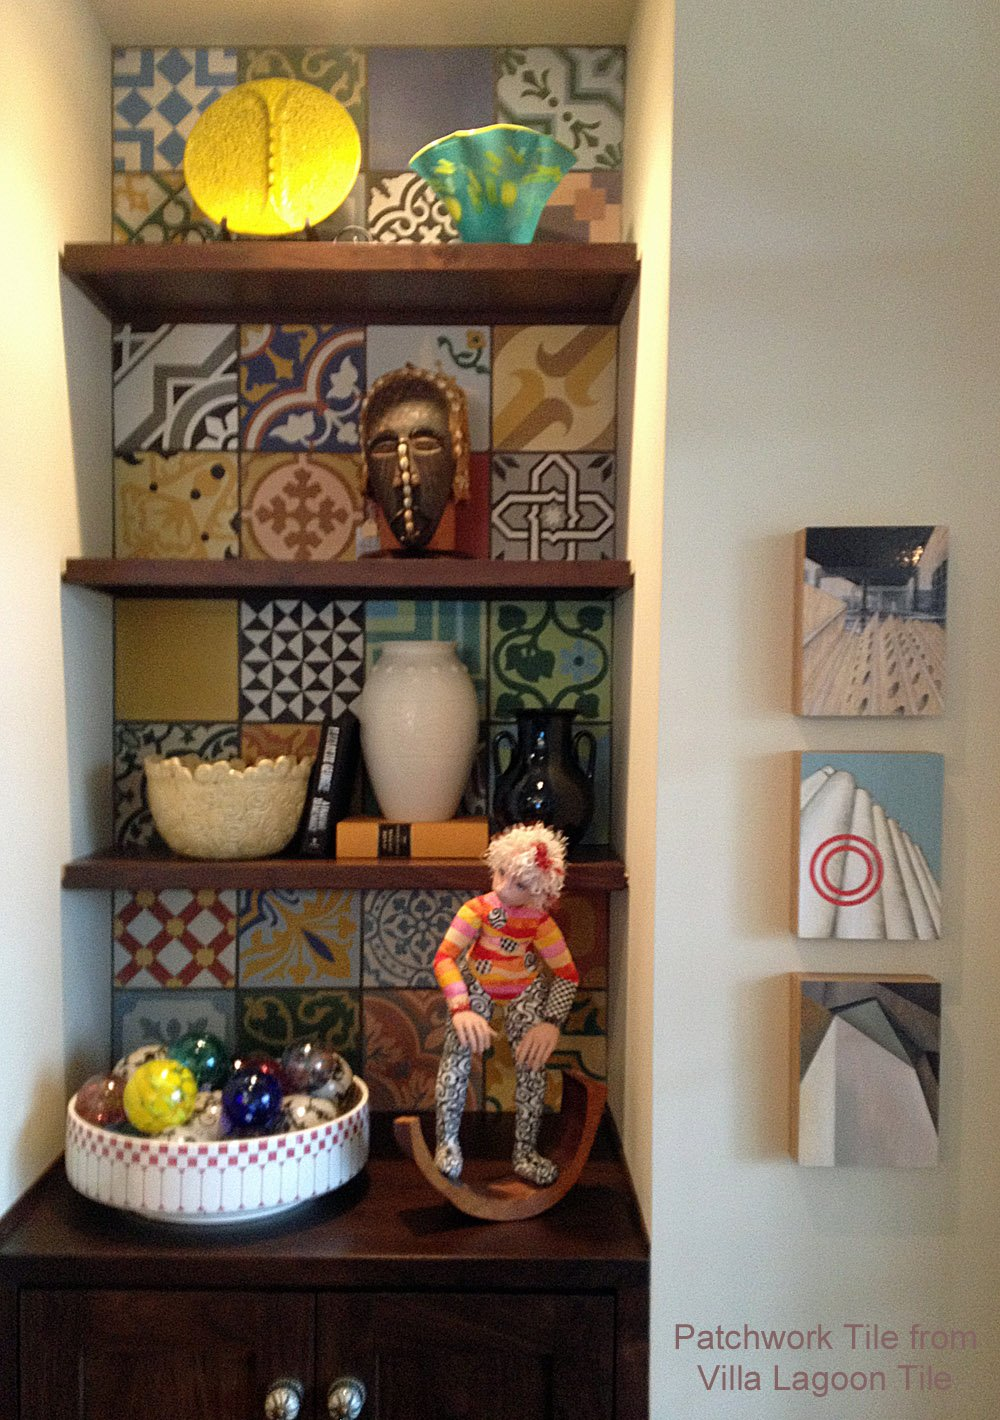 Built in shelves with colorful patchwork tile as a back feature